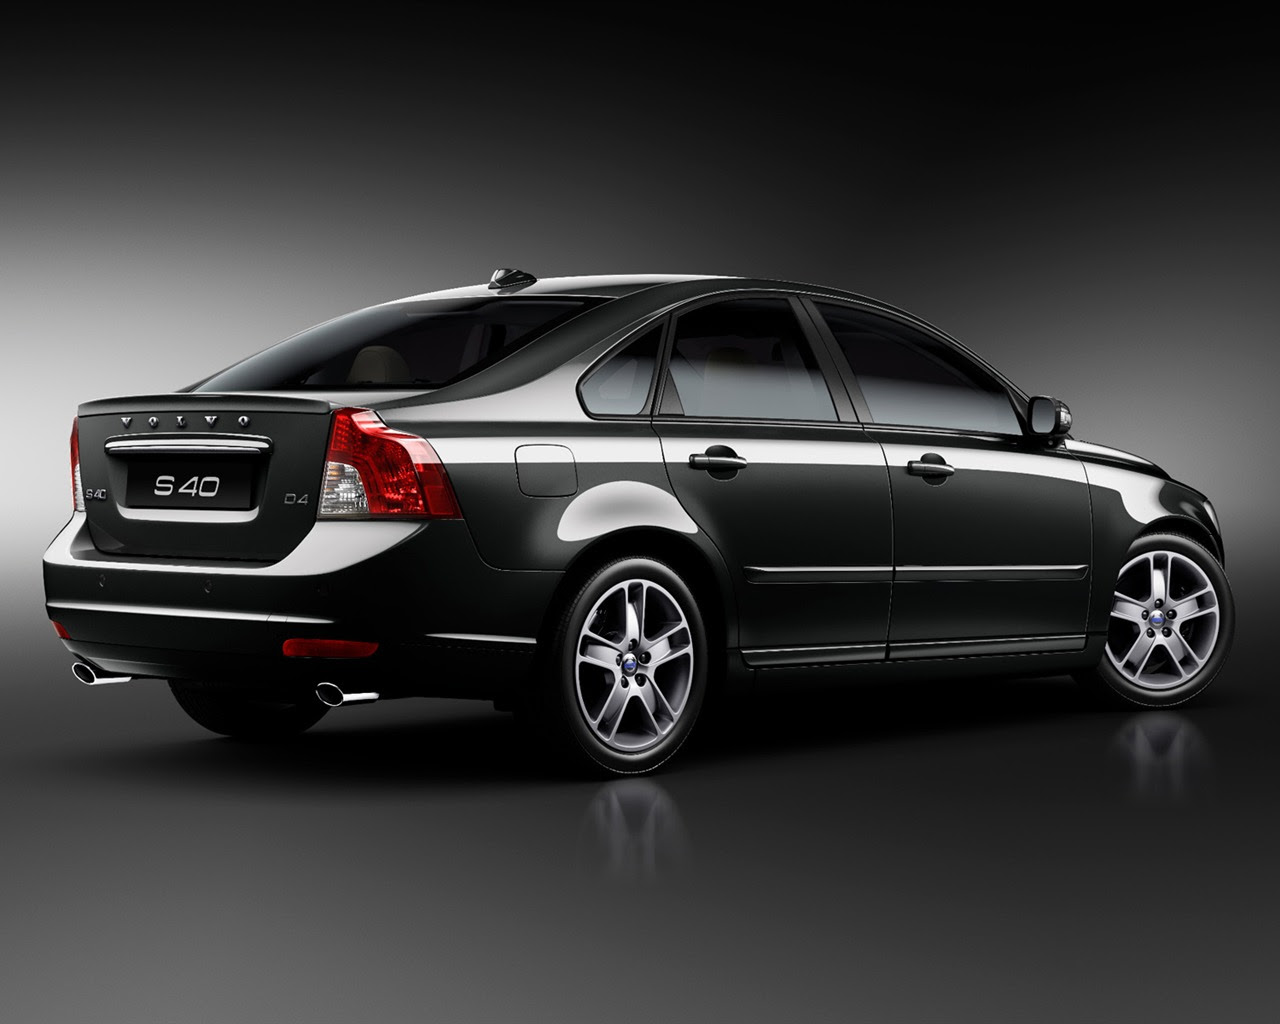 Volvo S40  2011 HD wallpaper 11  1280x1024 Wallpaper Download  Volvo S40  2011 HD wallpaper